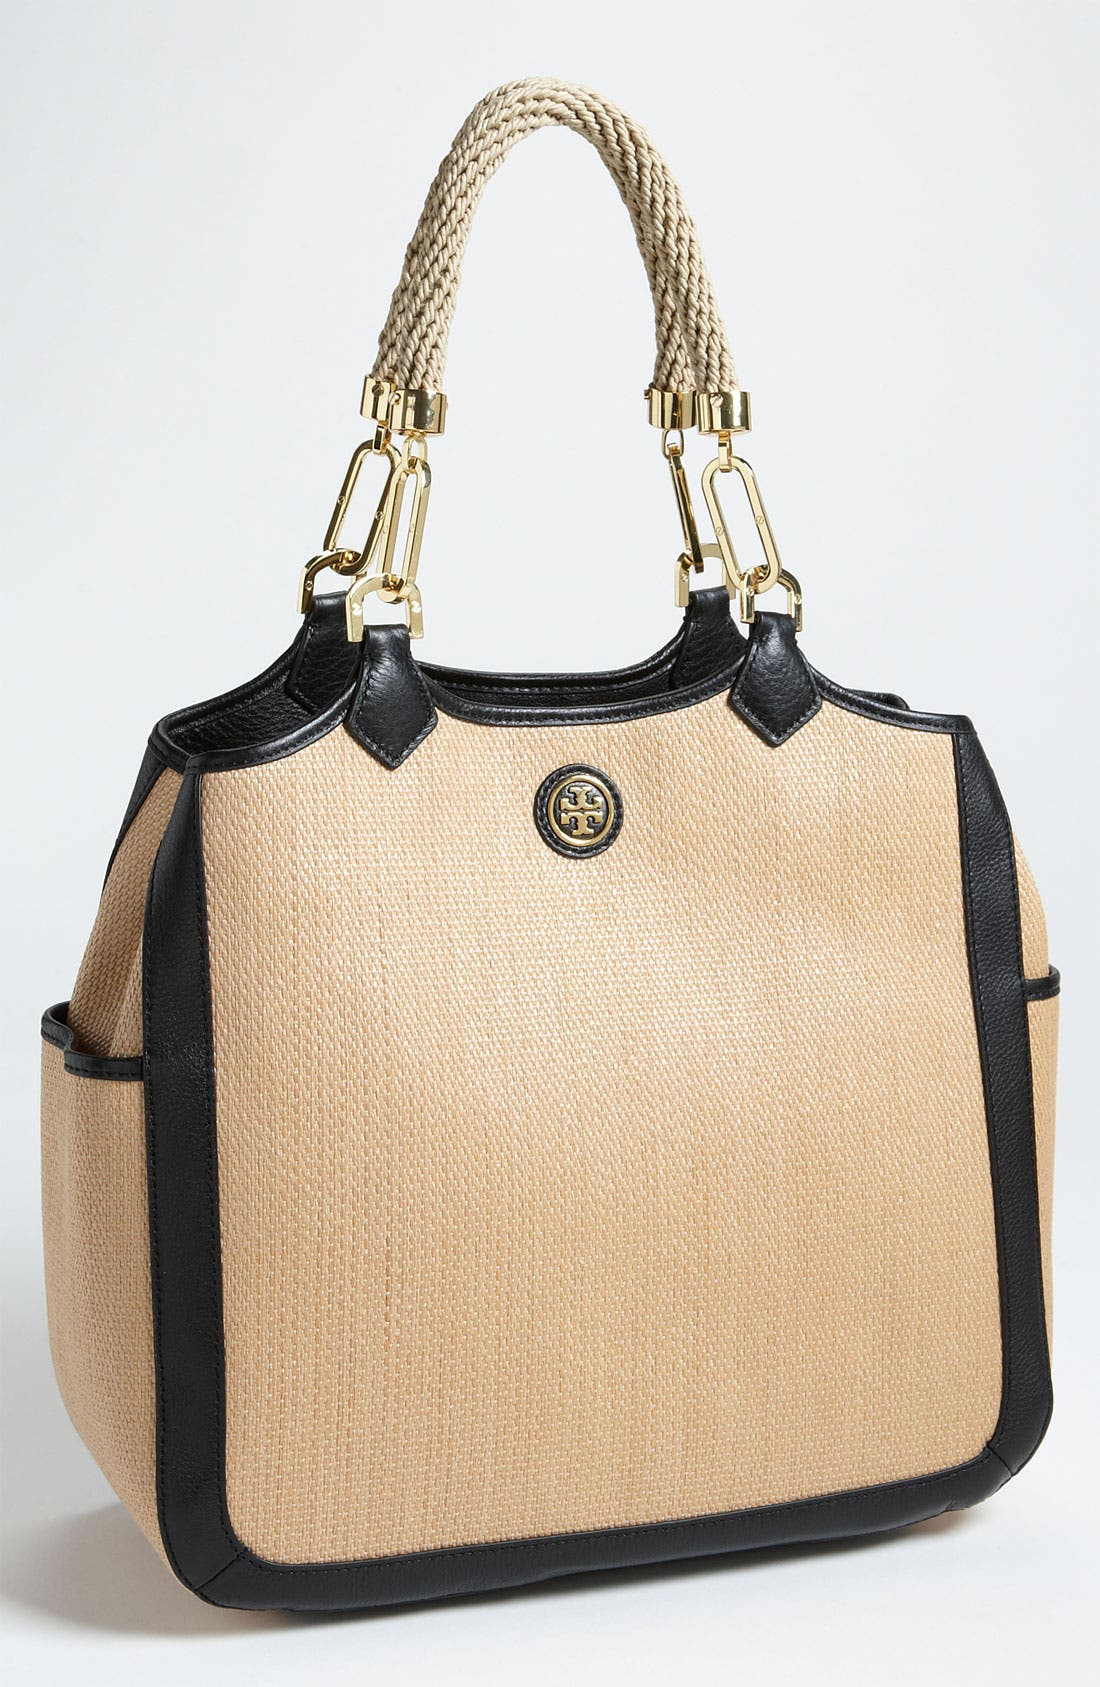 Alternate Image 1 Selected - Tory Burch 'Channing' Tote